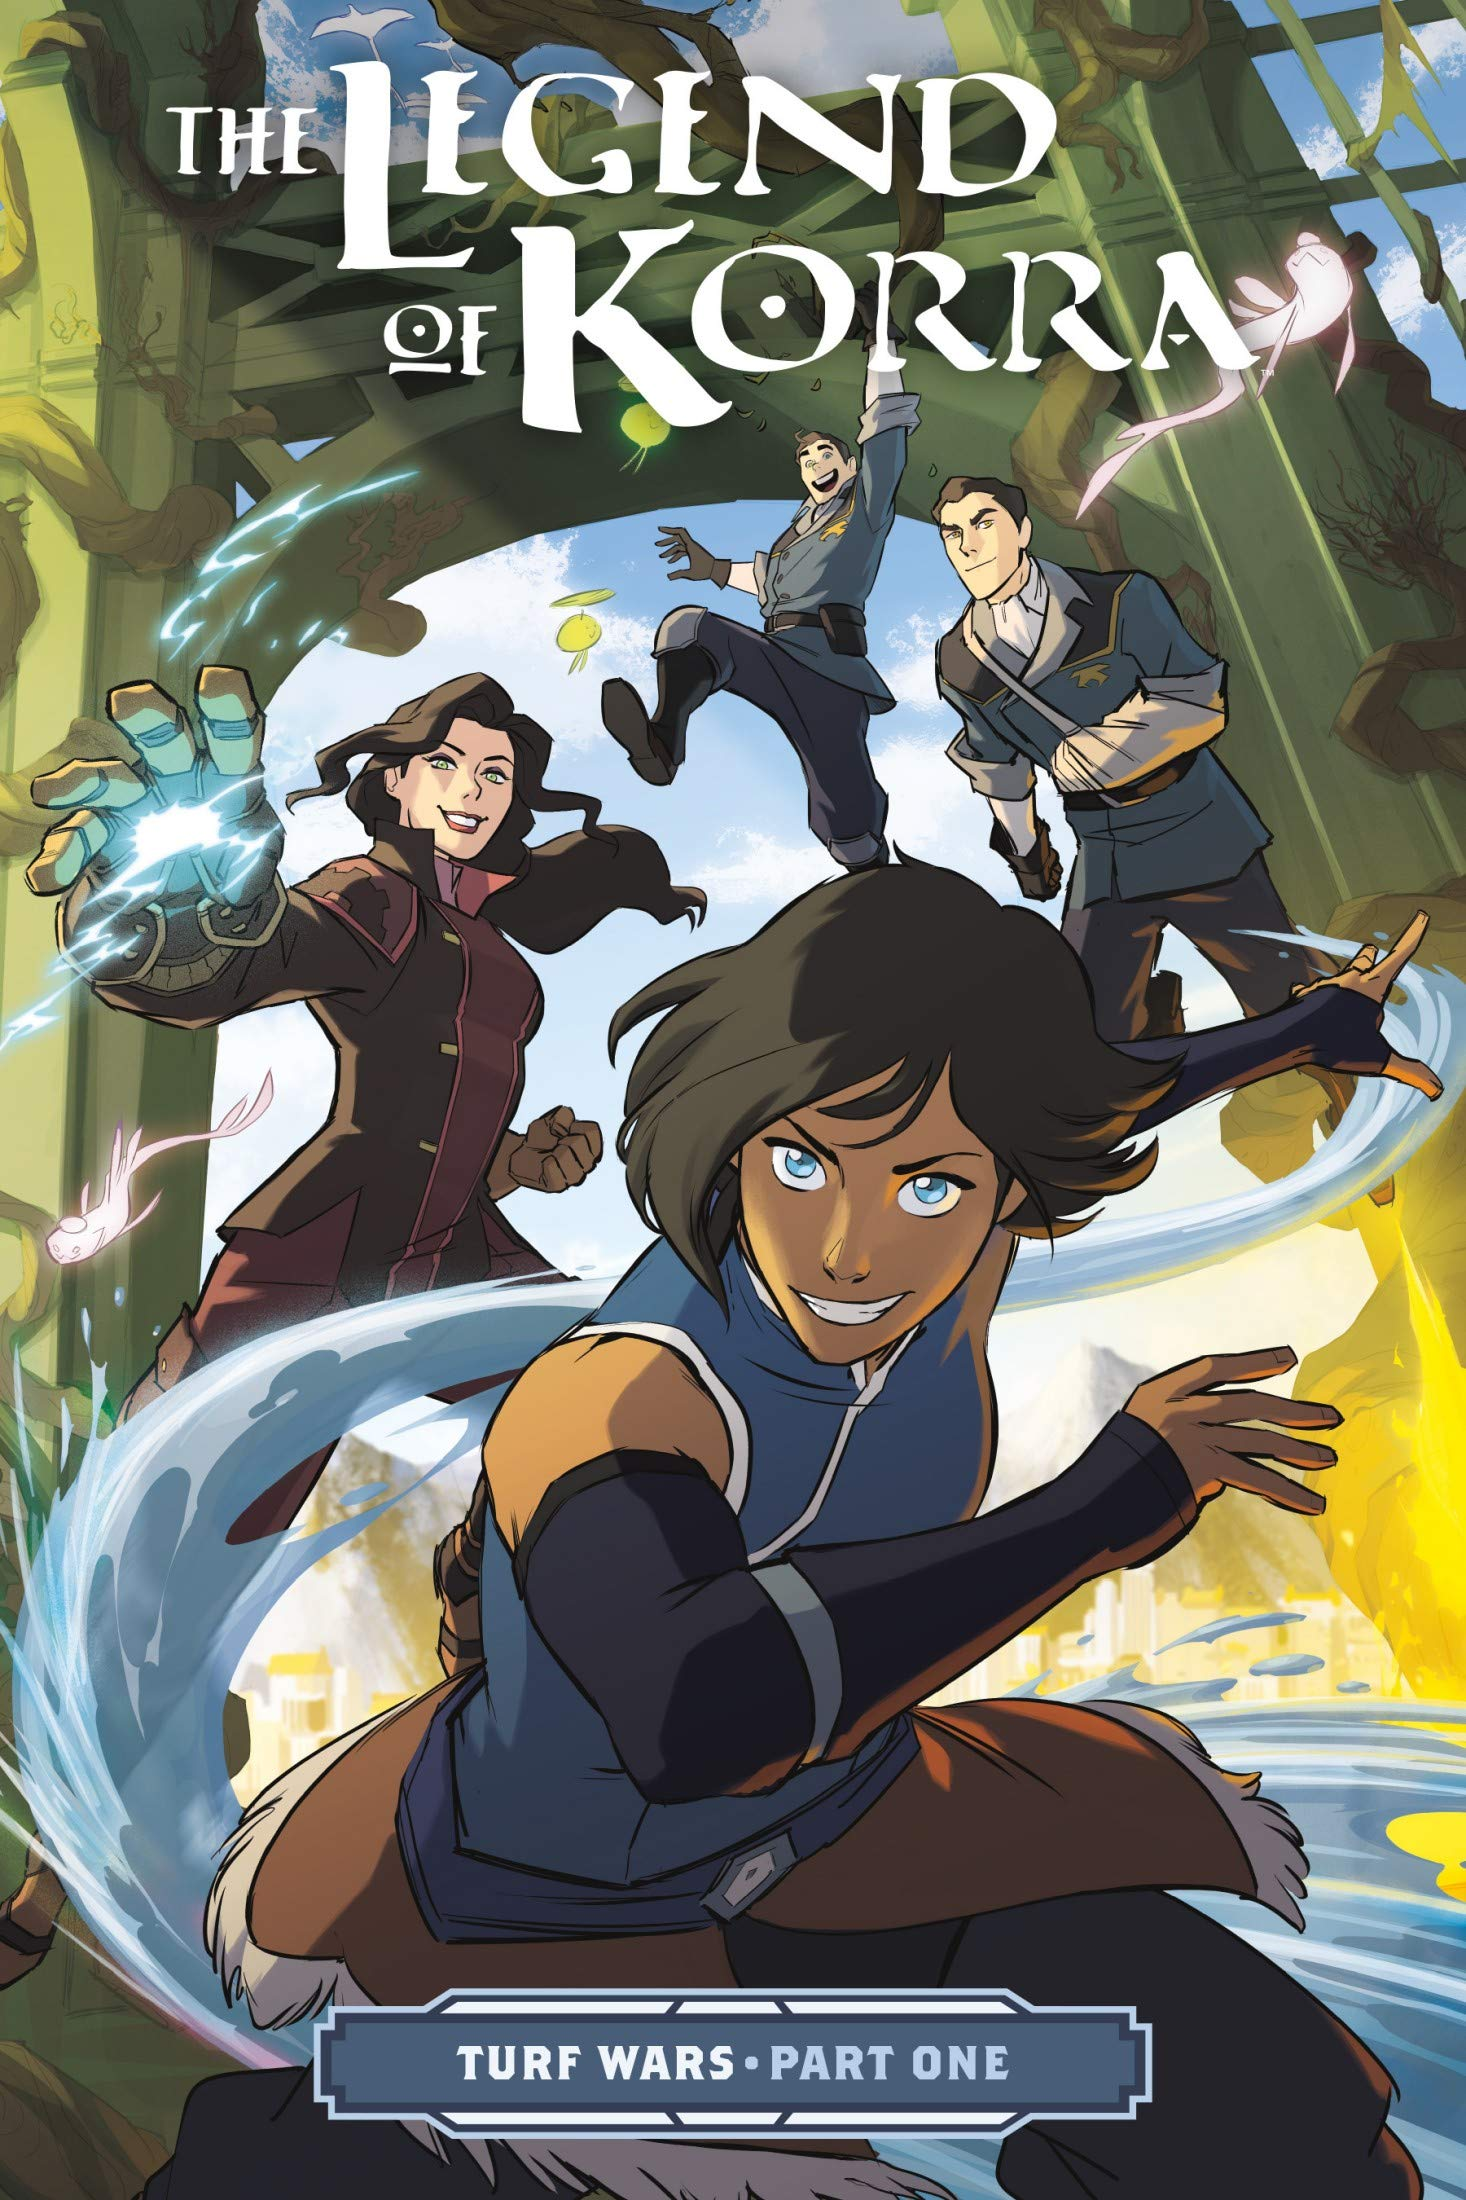 TheLegend: Korra - Vol 5 Great Adventure Comic Avatar The Legend Graphic Novels Of Korra For Young & Teens , Adults